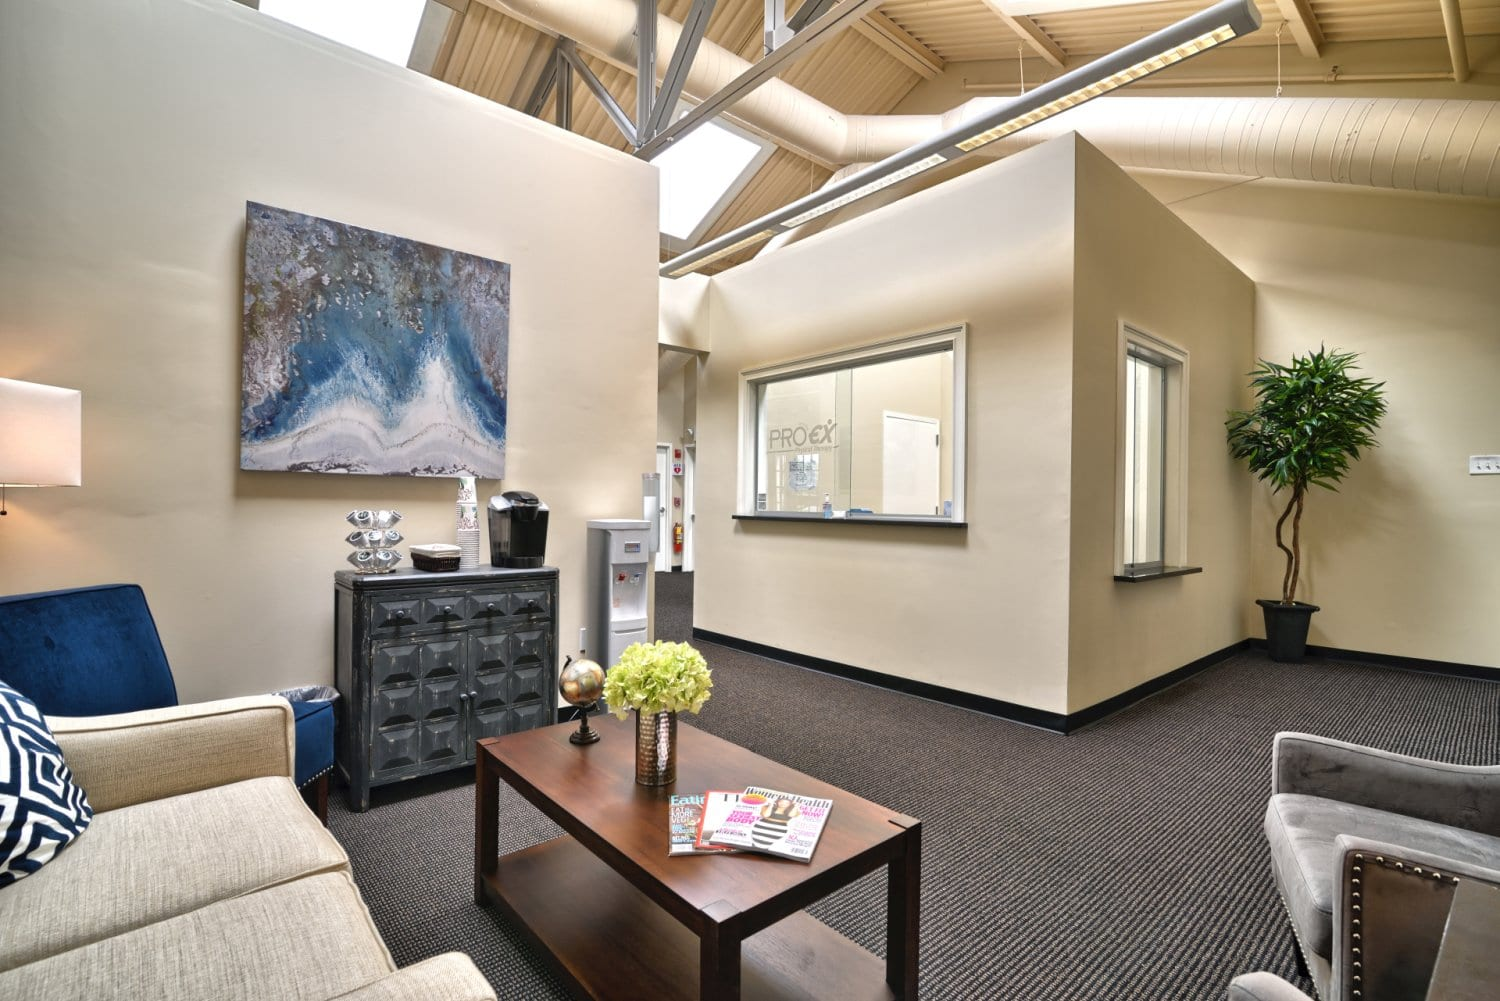 Here is a photo of the patient waiting area at our physical therapy clinic in Arlington, Massachusetts.